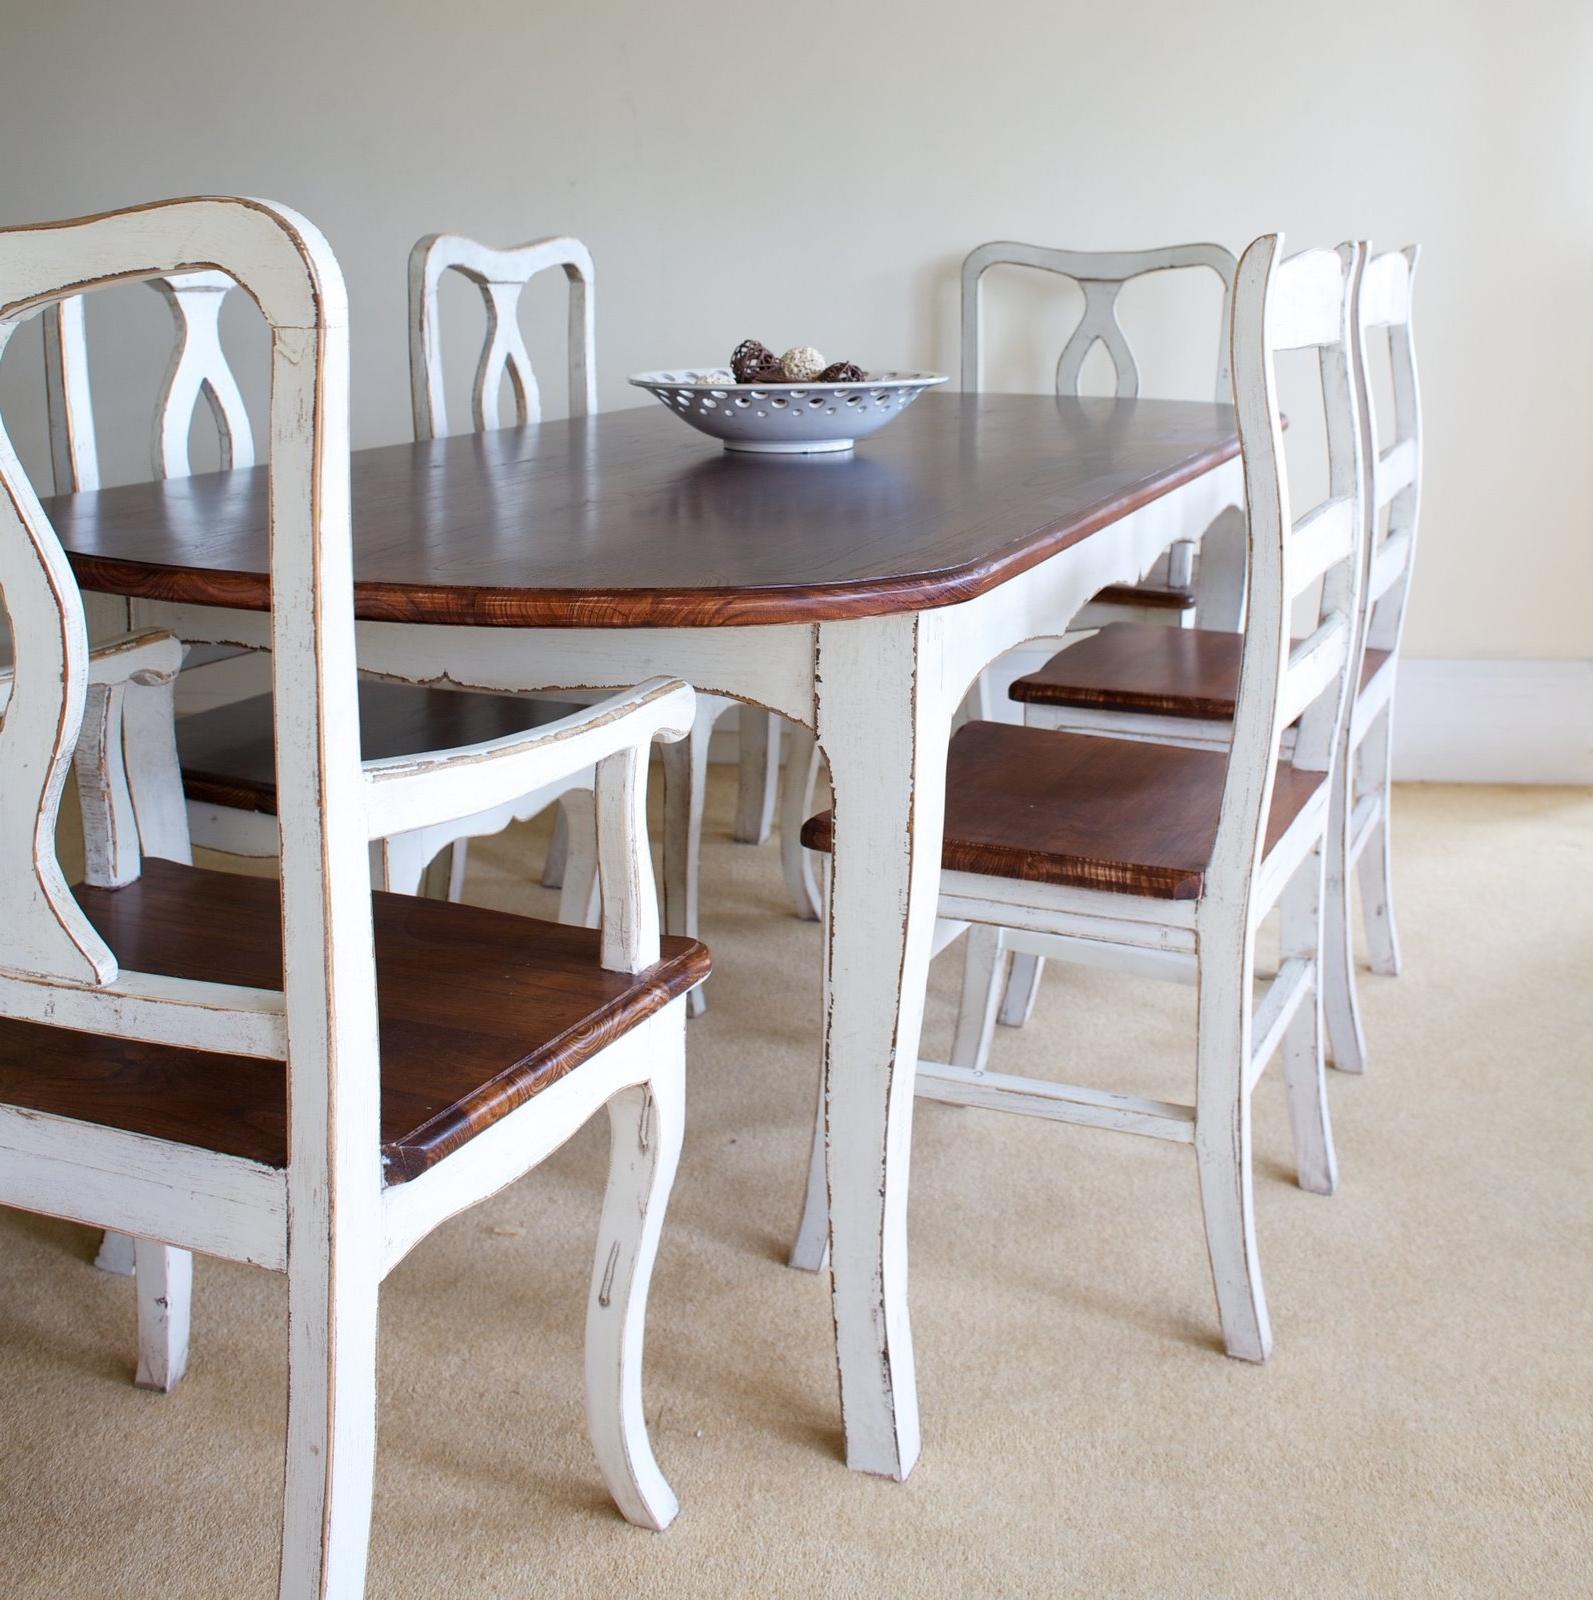 Well Liked Provence Dining Tables Within Shabby Chic Tables Provence Shabby Chic Rounded Edge, Shabby Chic (View 24 of 25)